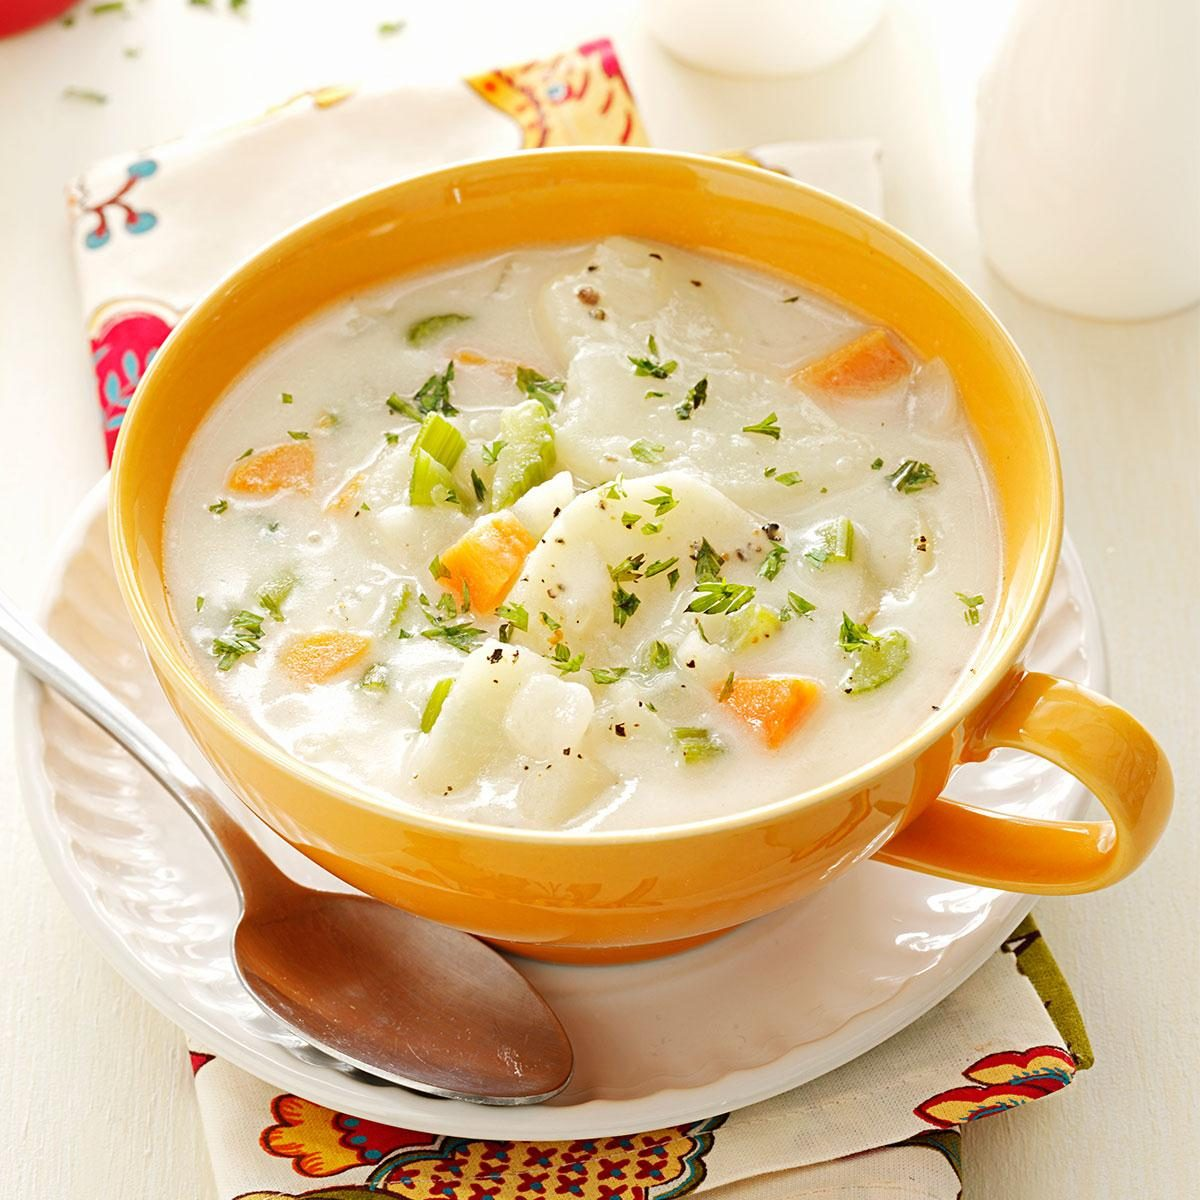 Recipe: Tasty Vegetarian Potato Soup